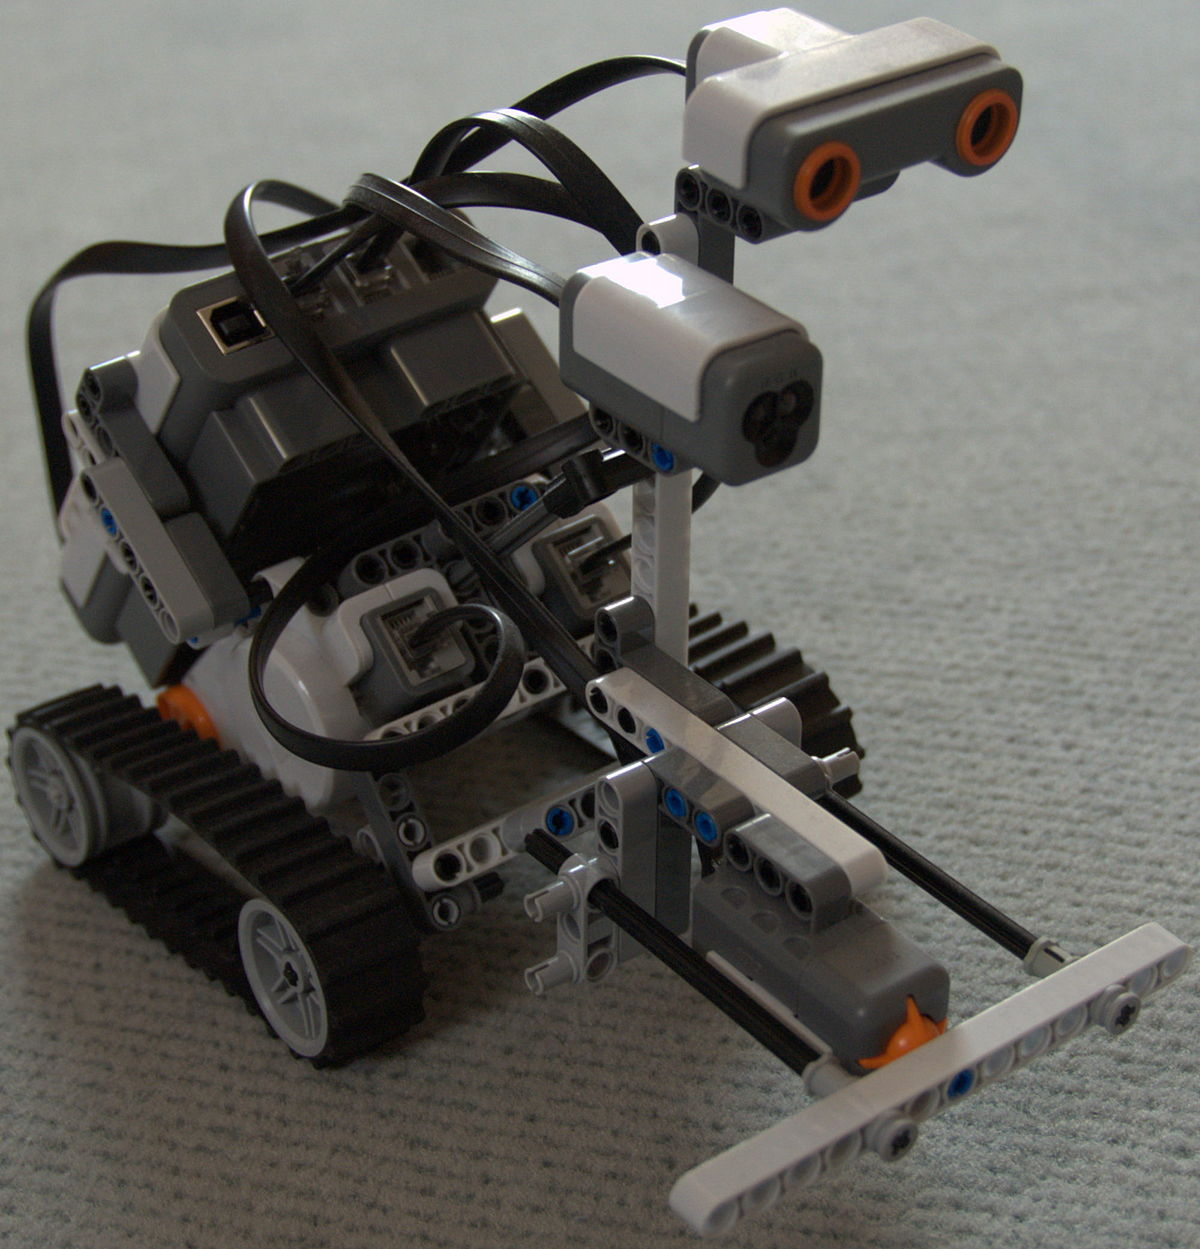 Lego Mindstorms NXT 2.0 - Wikipedia